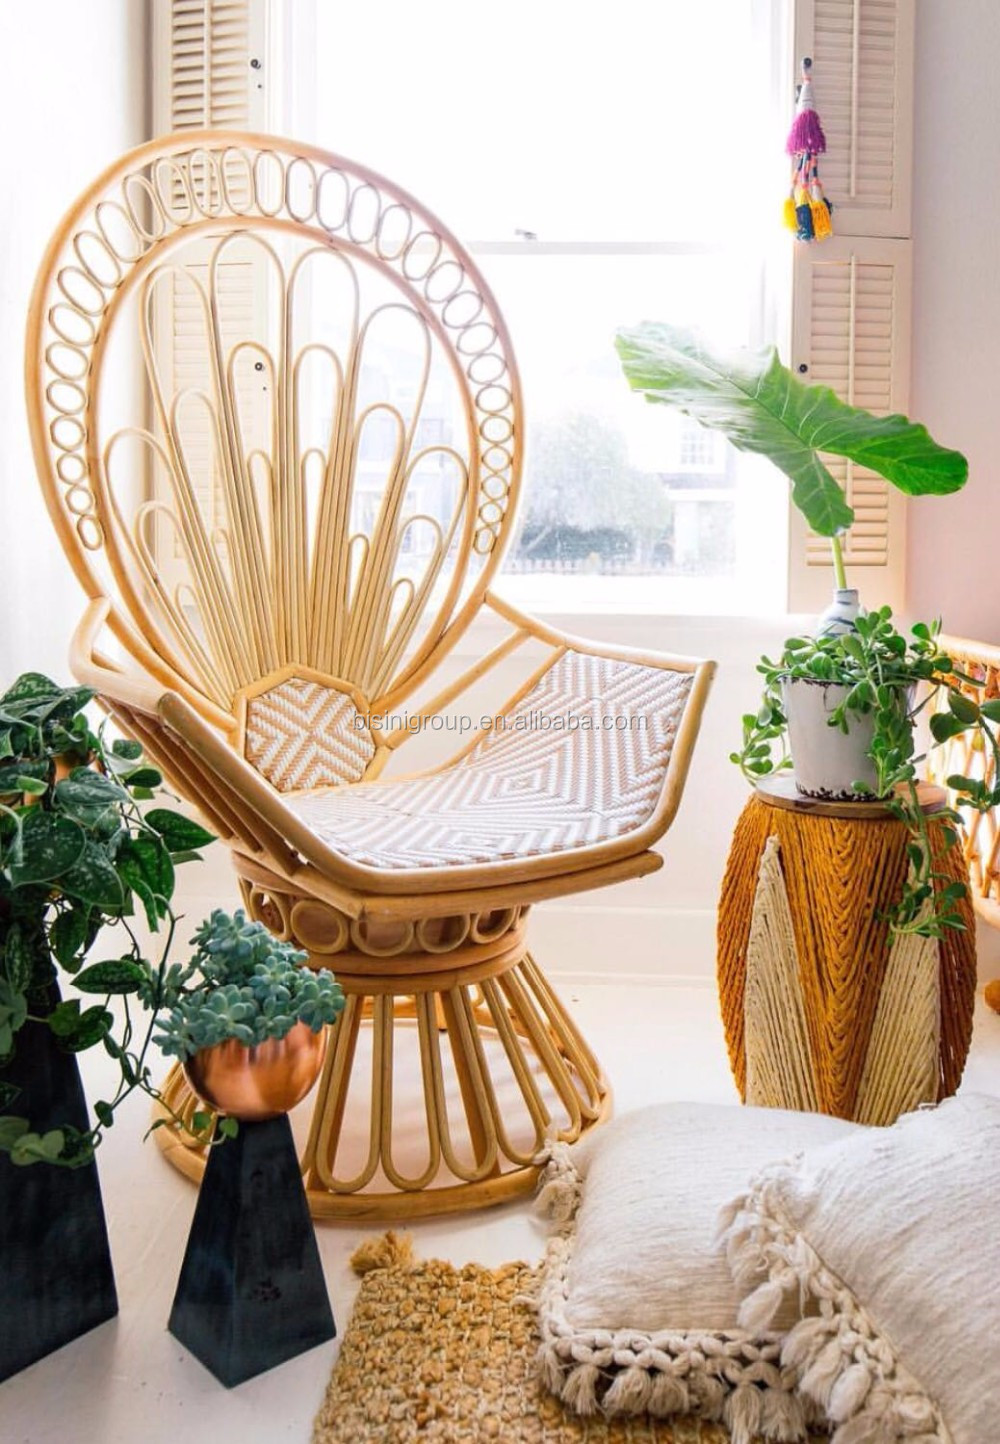 Peacock Living Room Bisini Natural Rattan Furniture Peacock Chair Rattan Chair Living Room Furniture Bg10 M486 View Living Room Furniture Bisini Product Details From